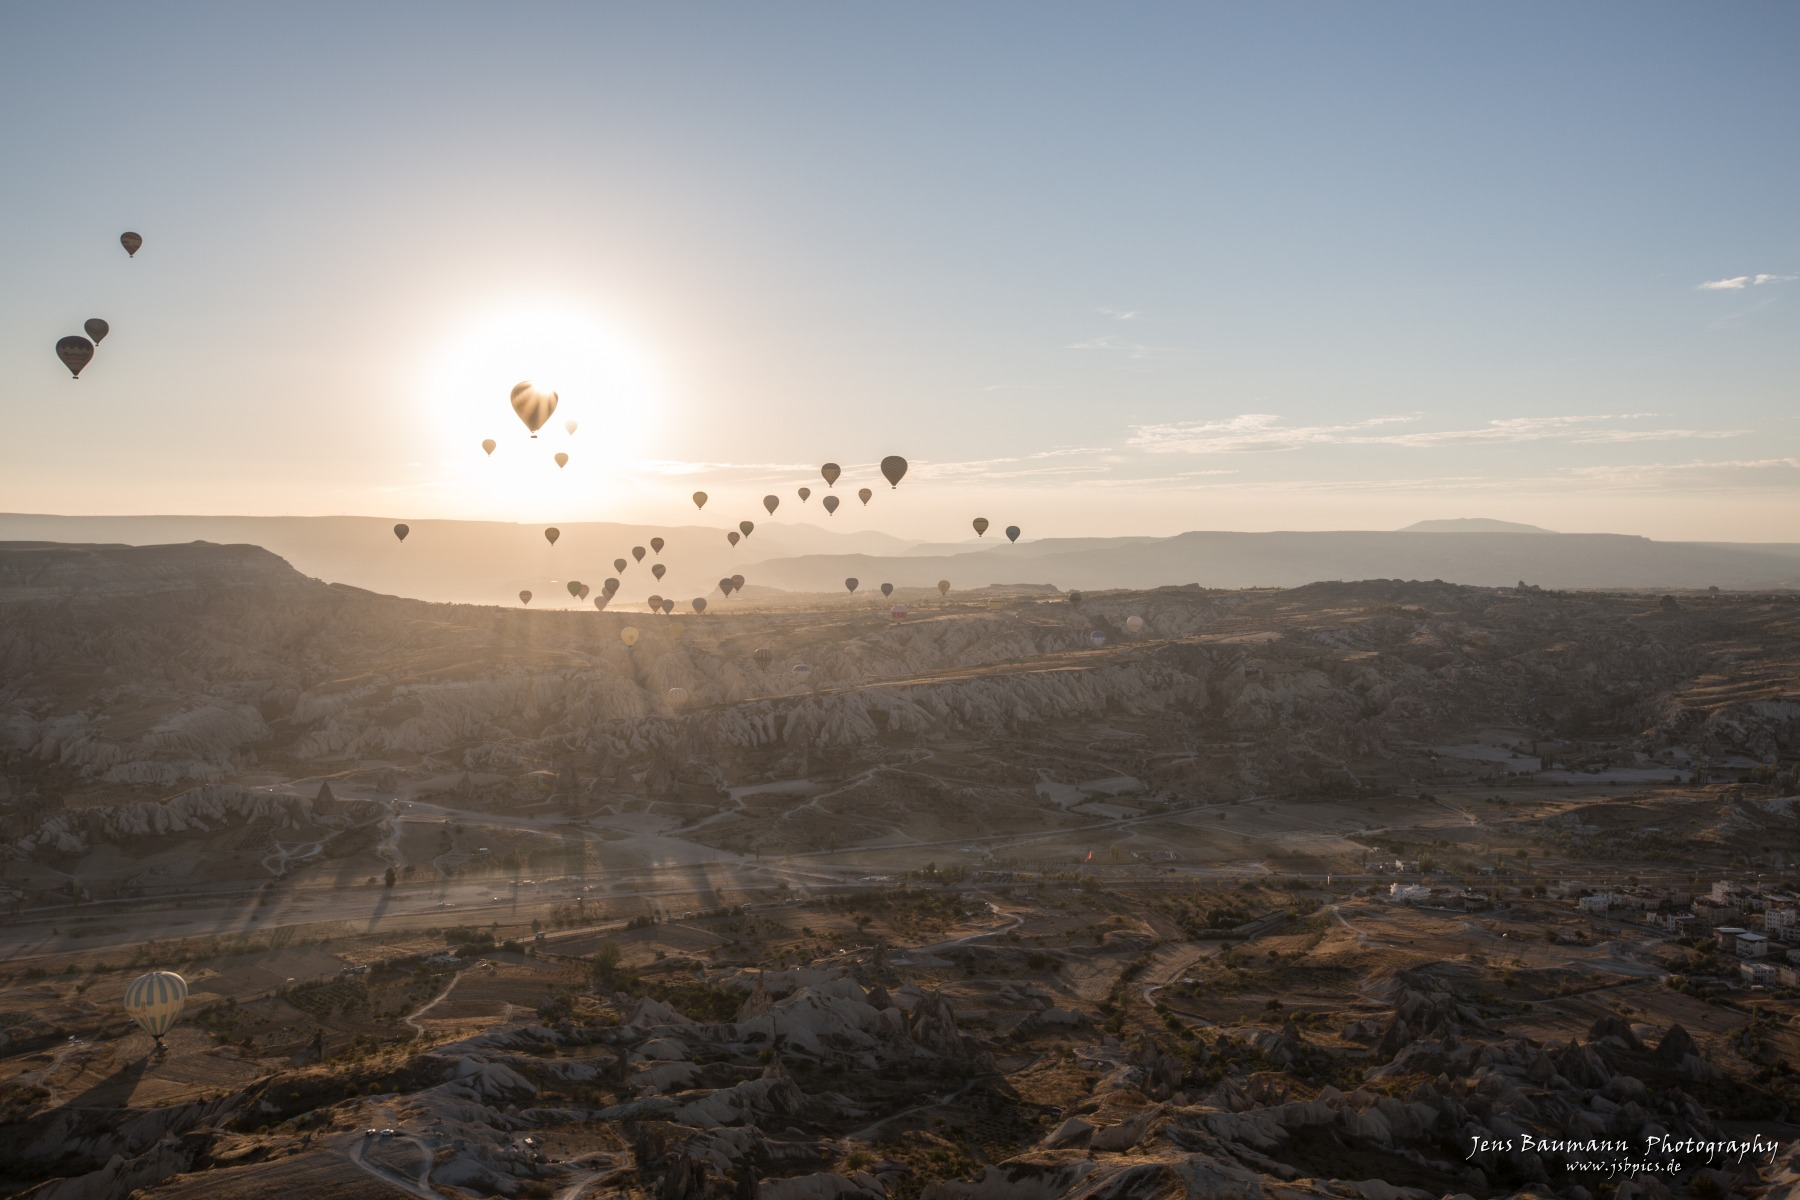 Turkey – Cappadocia – October 2018